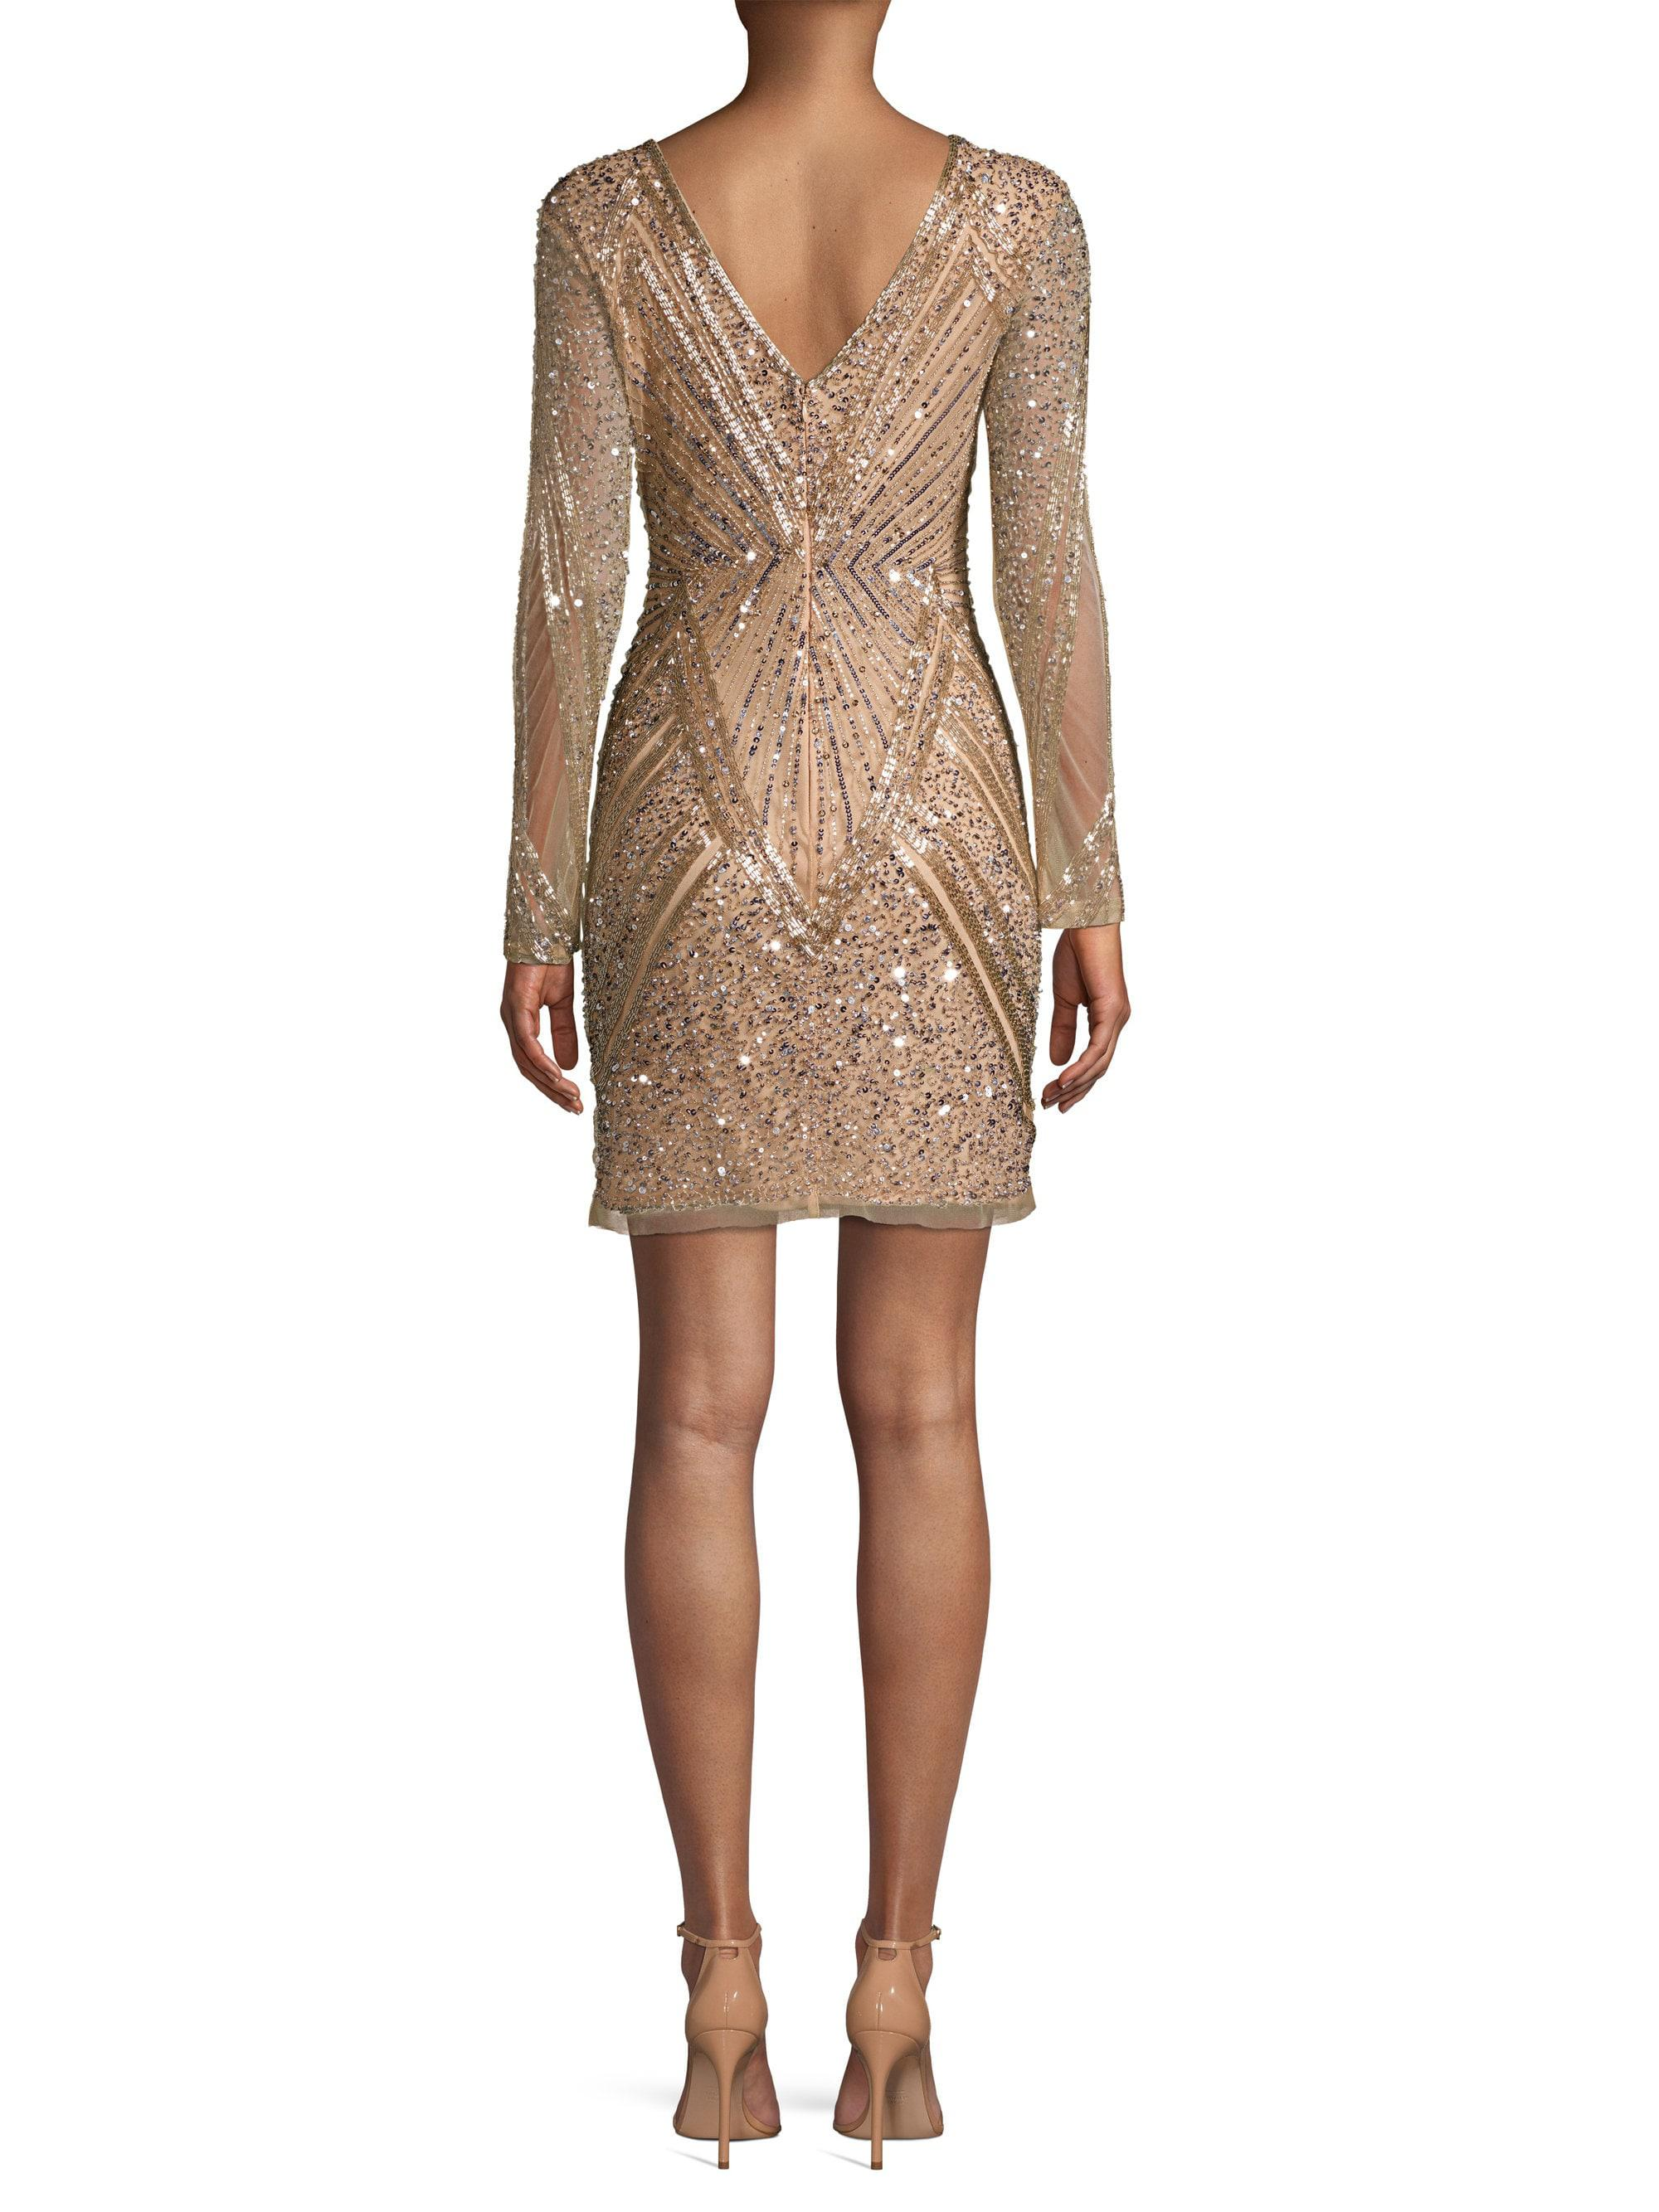 92fa918a86 Parker Black Janette Sequin Geometric Sheath Dress in Natural - Lyst